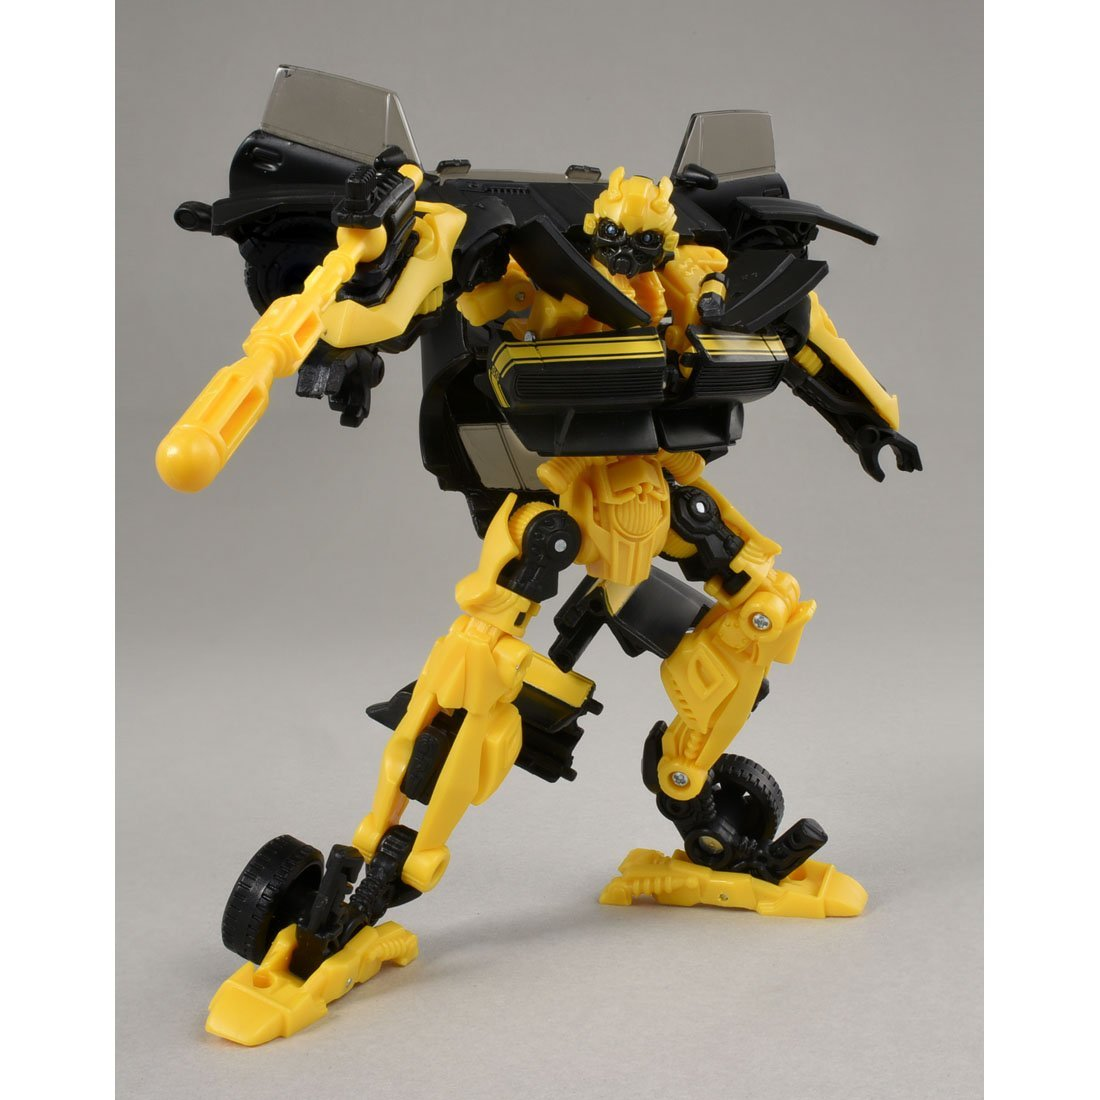 New stock images of transformers tribute bumblebee evolution 3 pack from amazon japan - Images of bumblebee from transformers ...